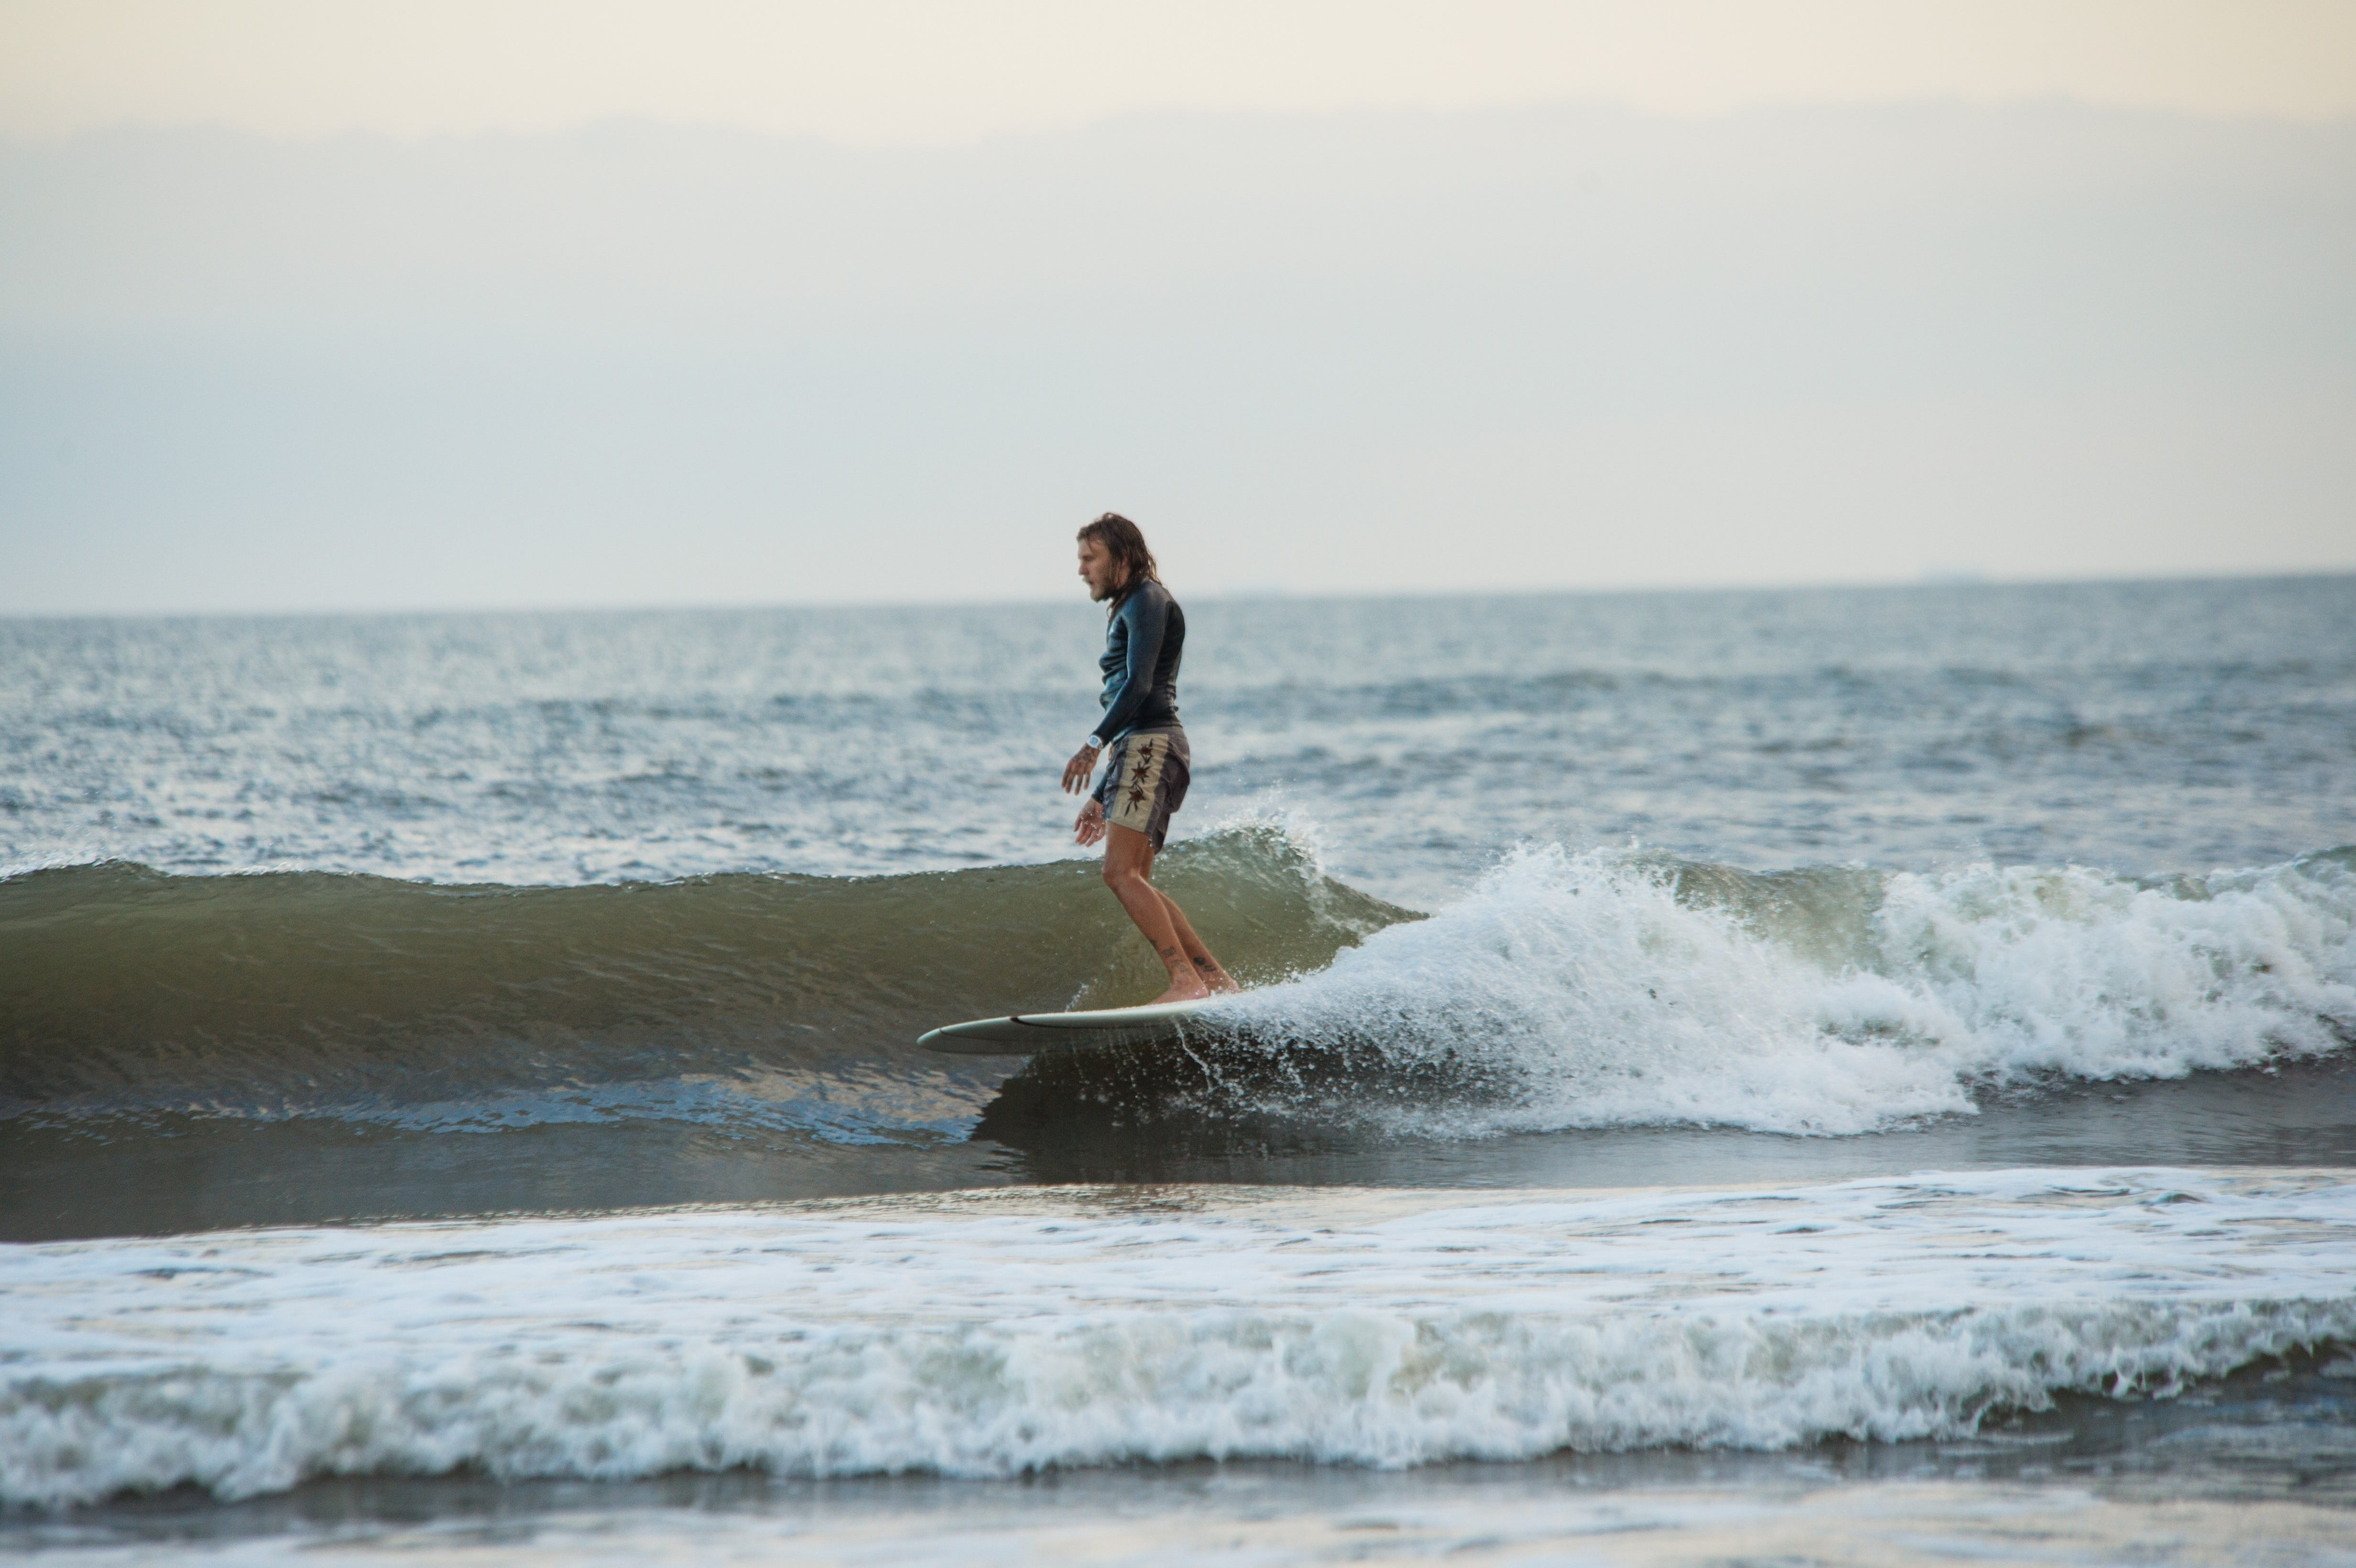 Keegan Matthew catches a wave in Grand Isle. One of his surfing mottos for catching waves in the Gulf of Mexico is